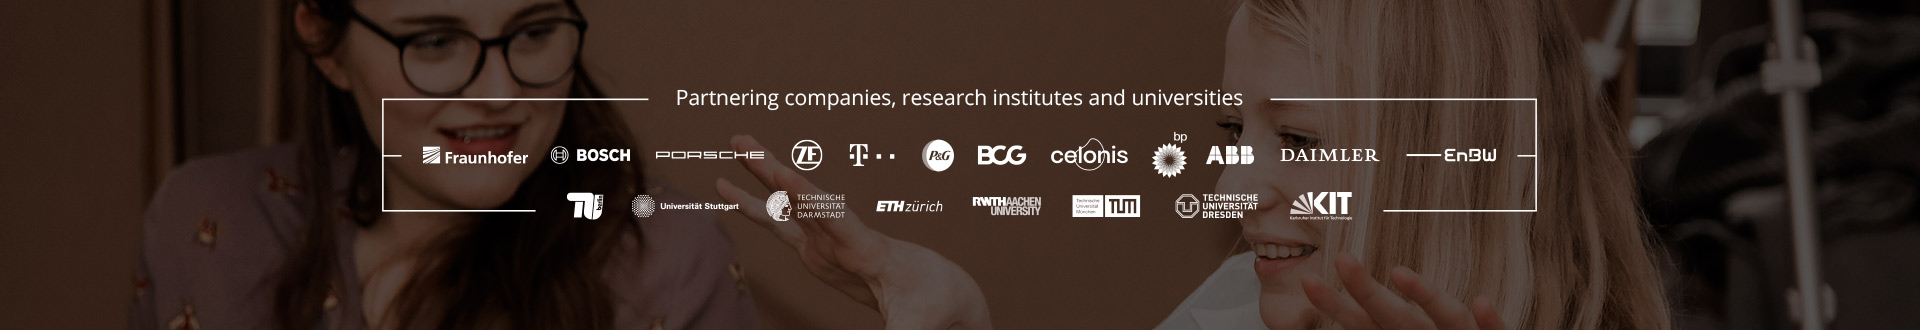 https://www.femtec.org/wp-content/uploads/2020/07/homepage_slider_partnerlogos_inverted_small_header_1920x330px_EN.jpg